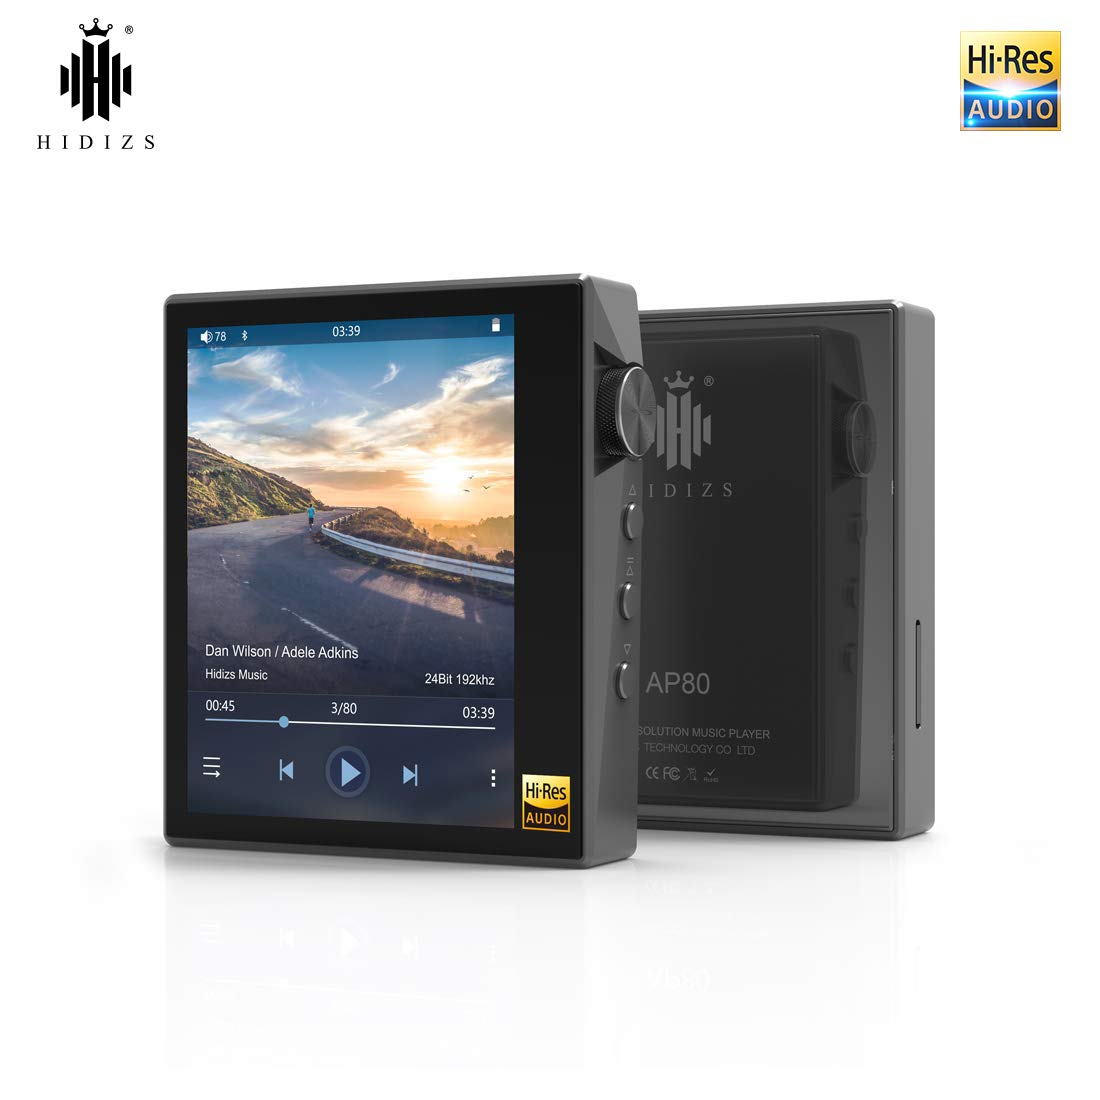 HIDIZS AP80 Ultraportable Bluetooth Resolution